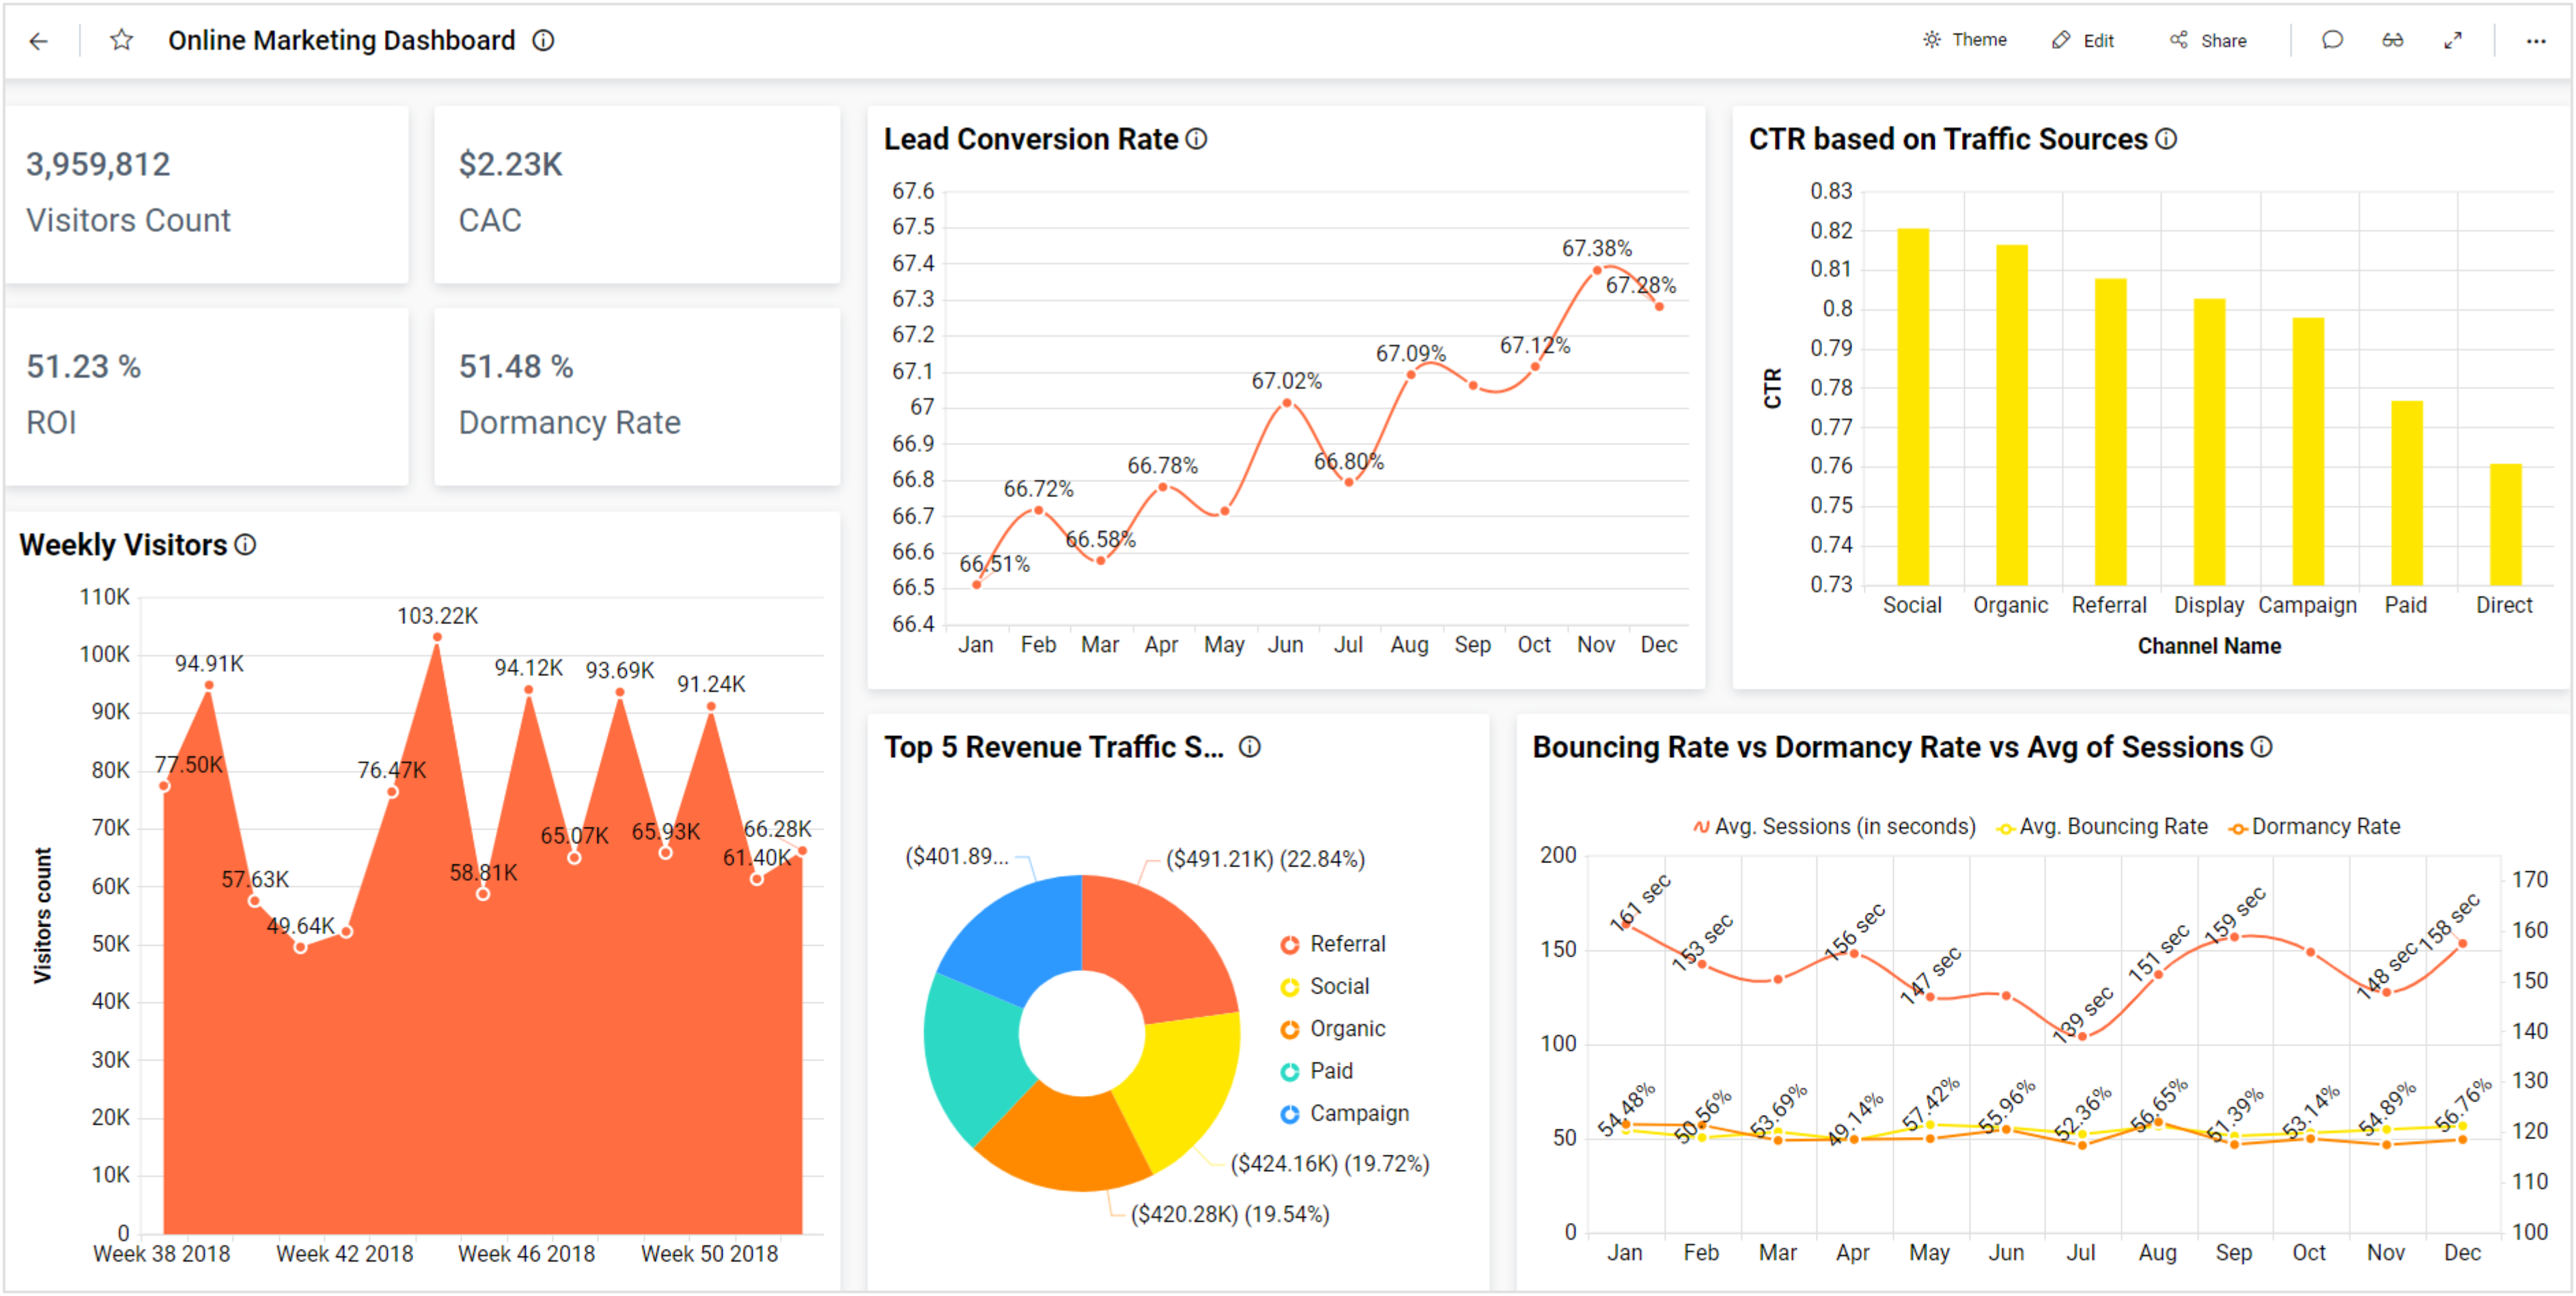 Online Marketing Dashboard with Dimension Filters Applied